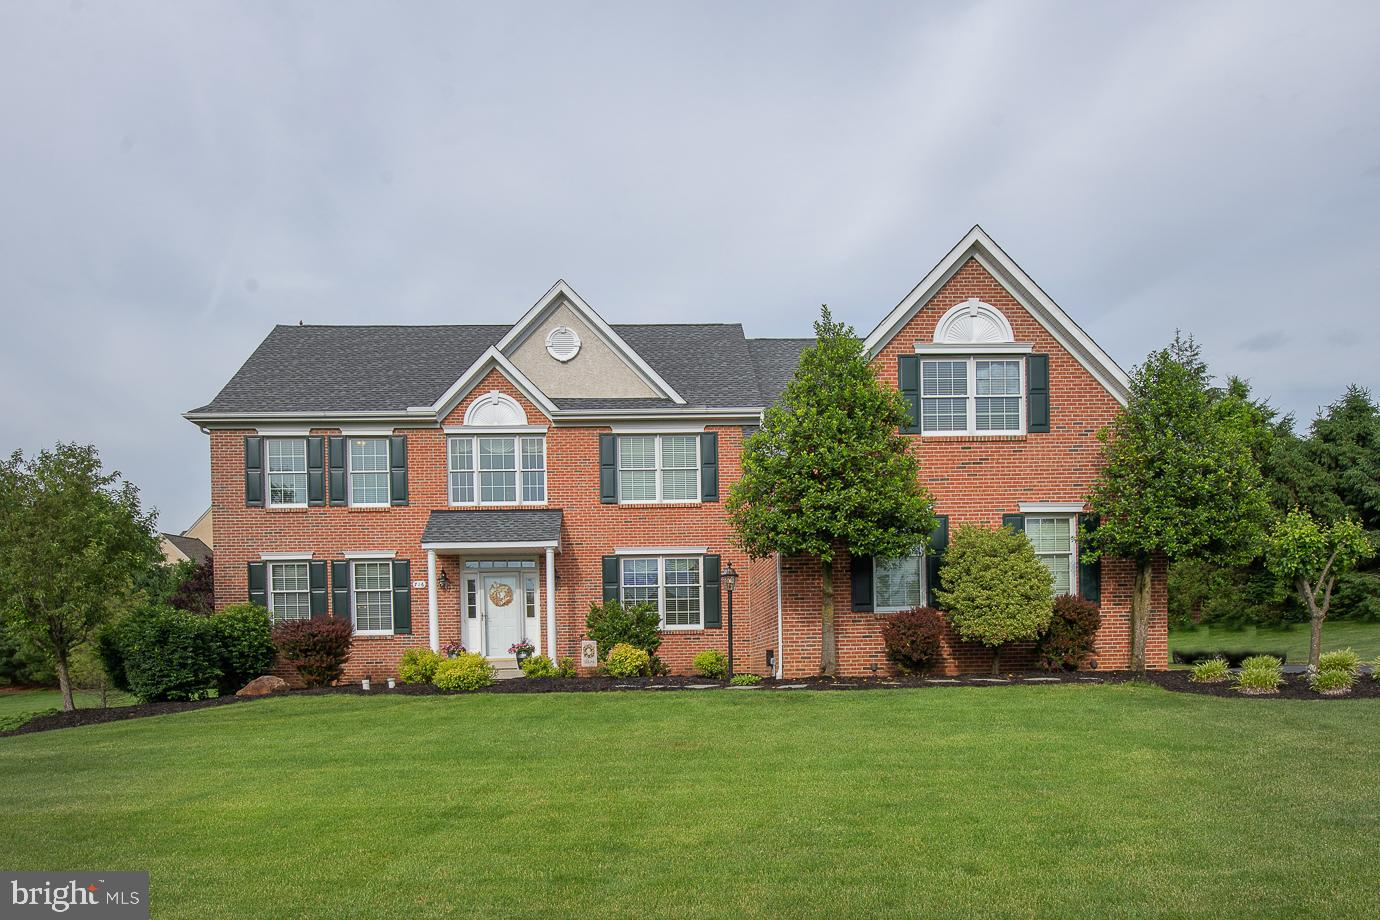 """Welcome to 716 Yarmouth Drive, a gorgeous brick front Jamestown model in the sought after community of """"Clocktower Woods"""" in East Goshen. Situated on a private level lot, this neutrally decorated & beautifully appointed home offers over 5,000 square feet of living space on 3 levels featuring 5 Bedrooms, 4 full Baths and 1 half Bath including a professionally finished Lower Level w/Game Room, Media Room, Exercise Room, large custom Bar area w/wet bar sink, 2nd Home Office & full Bath. Recent 2021 updates include freshly painted interior & exterior, refinished hardwood floors, new Recessed Lighting, new Side Porch, new landscaping and an updated, refinished deck. Extensive custom millwork throughout 1st & 2nd floors includes crown molding, chair rail, dentil moldings and wainscoting plus custom blinds throughout. 1st Floor features stunning 2-story Foyer w/hardwood and turned staircase; Dining Room w/hardwood, Living Room w/hardwood, private Study w/hardwood; magnificent 2-story Family Room w/feature windows, slate surround gas Fireplace & family back staircase; renovated Gourmet Kitchen/Breakfast Room features additional custom cabinetry including new glass cabinets, hardwood, granite countertops, stainless appliances including 5-burner cooktop, built-in microwave & double wall oven plus oversized custom Island; Powder Room, Laundry/Mudroom w/sink & cabinetry complete main level. 2nd floor offers large luxury Master Suite w/walk-in closets, Master Bath featuring deep soaking tub, oversized tile stall shower & separate vanity sinks; 4 additional family Bedrooms including large Princess Suite w/en-suite bath also accessible to the hallway and Jack 'n Jill Bath for Bedroom 4 and 5. Additional amenities include 3-car garage & large rear deck. Don't miss this fabulous home in the award-winning West Chester School District and close to the area's finest private schools. Convenient to Malvern & Paoli train stations, the shops and restaurants of downtown Malvern, West Cheste"""